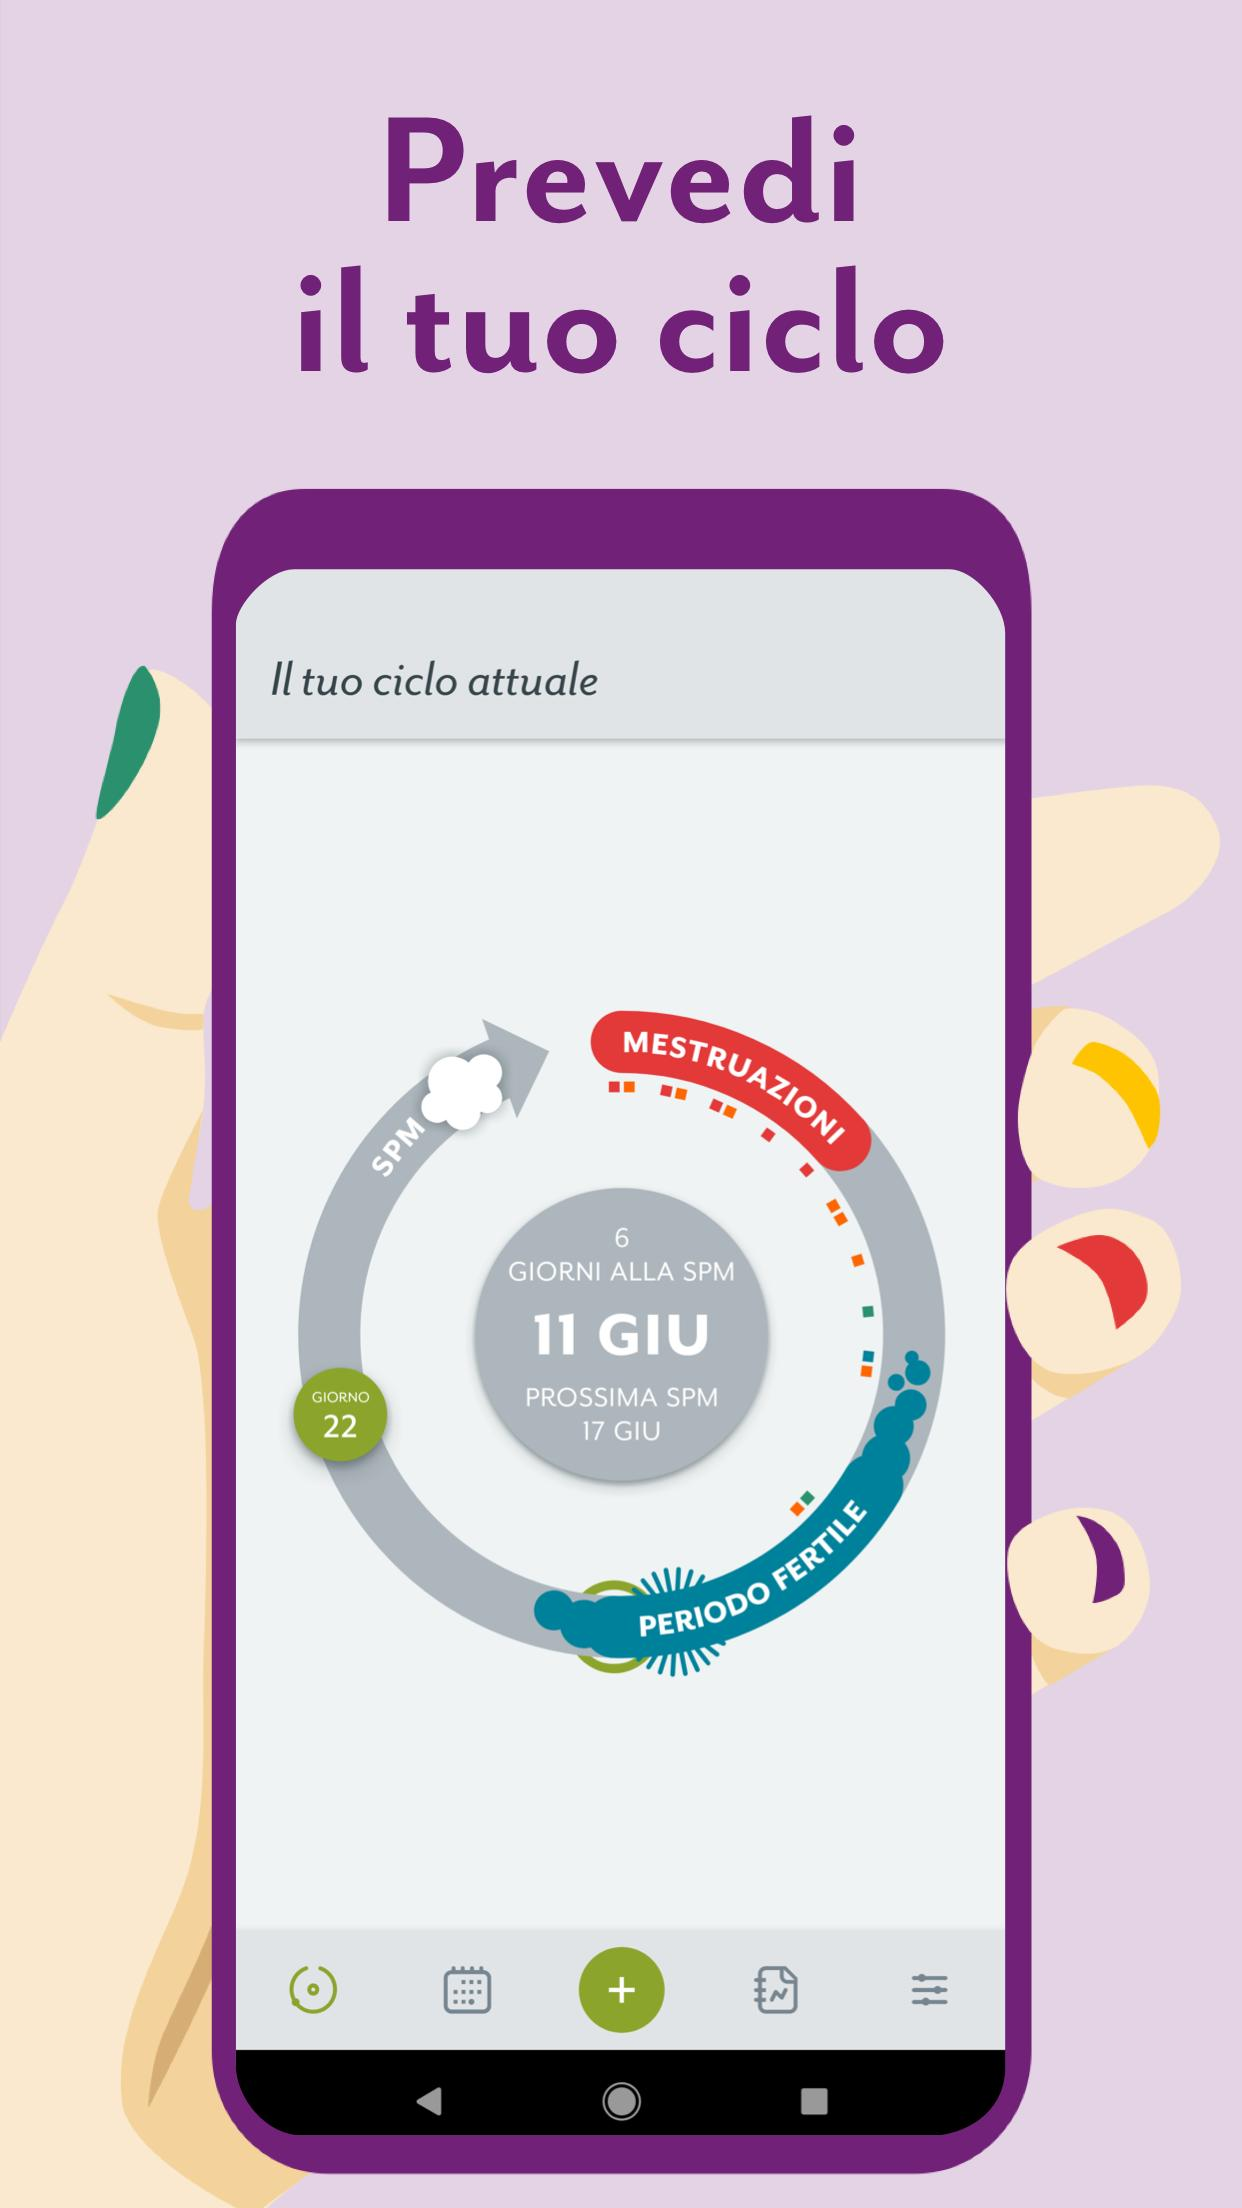 Calendario Di Ovulazione.Calendario Mestruale Clue Ovulazione E Ciclo For Android